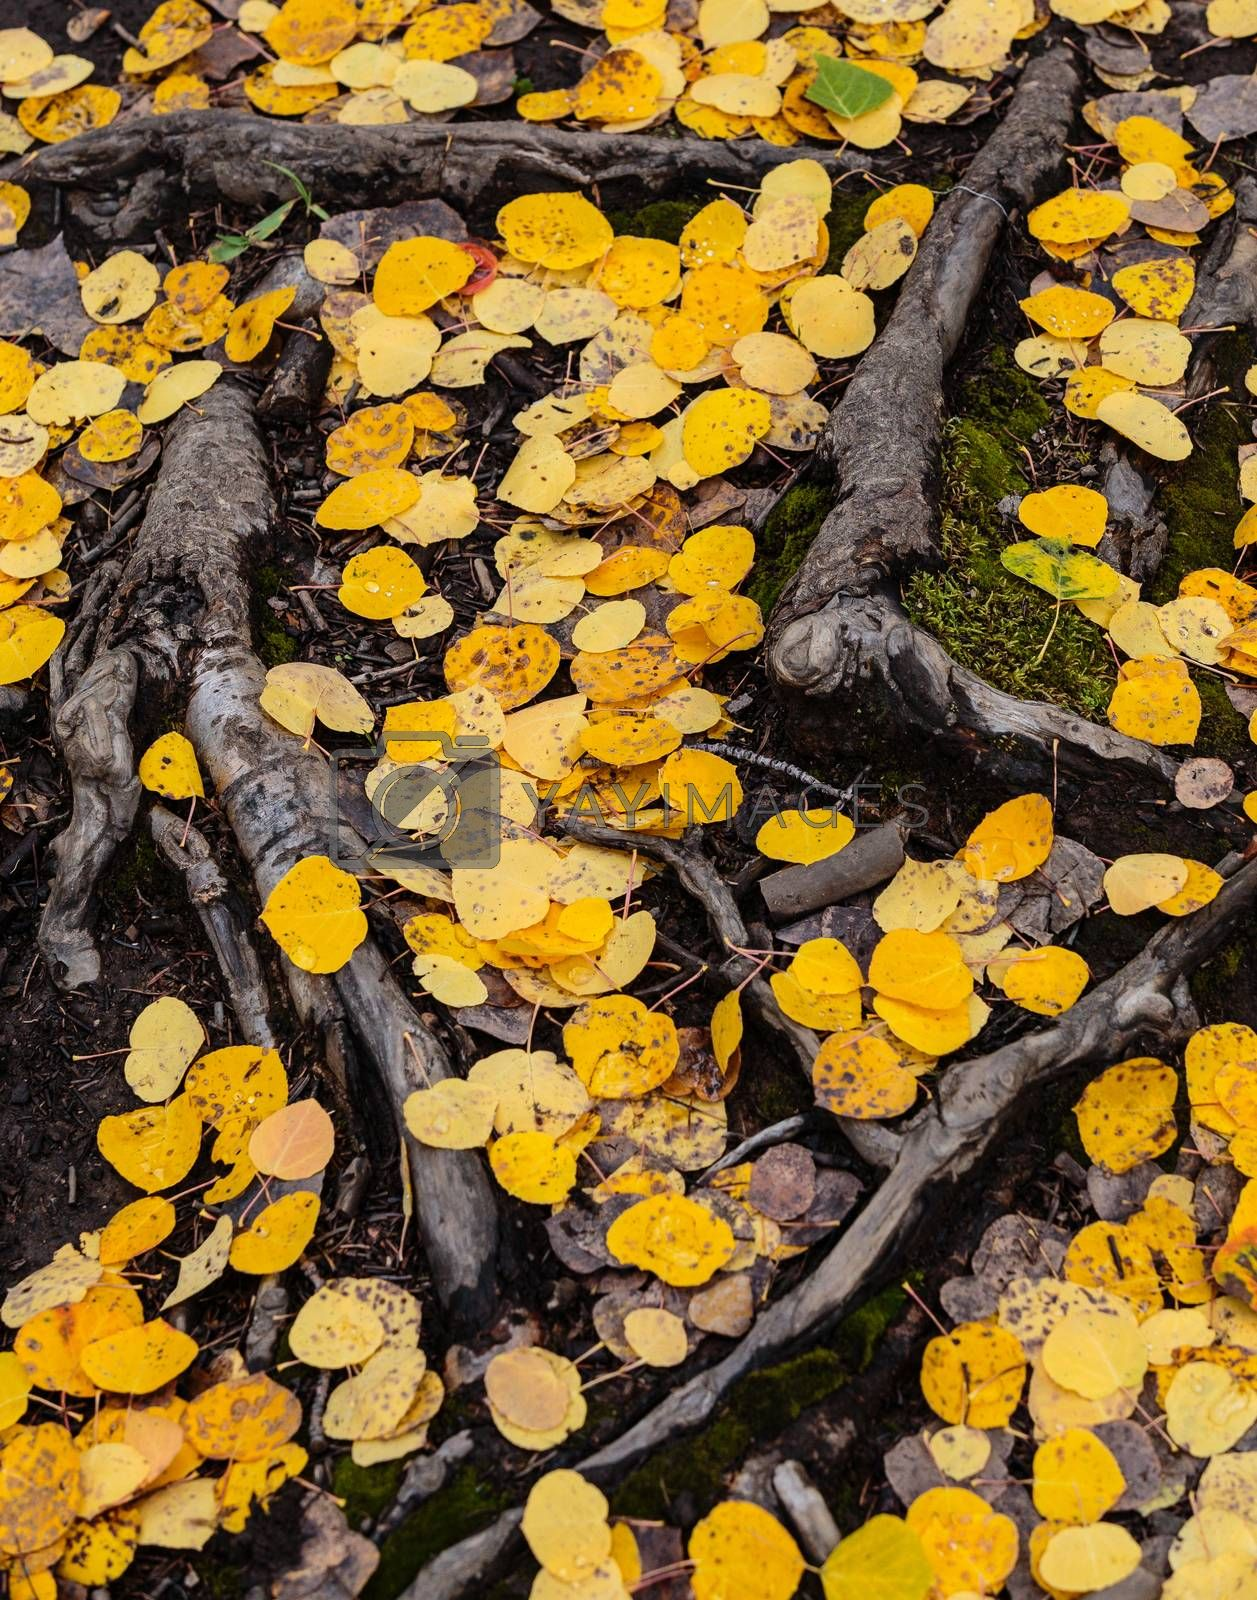 Aspen leaves scattered on the ground among tree roots.